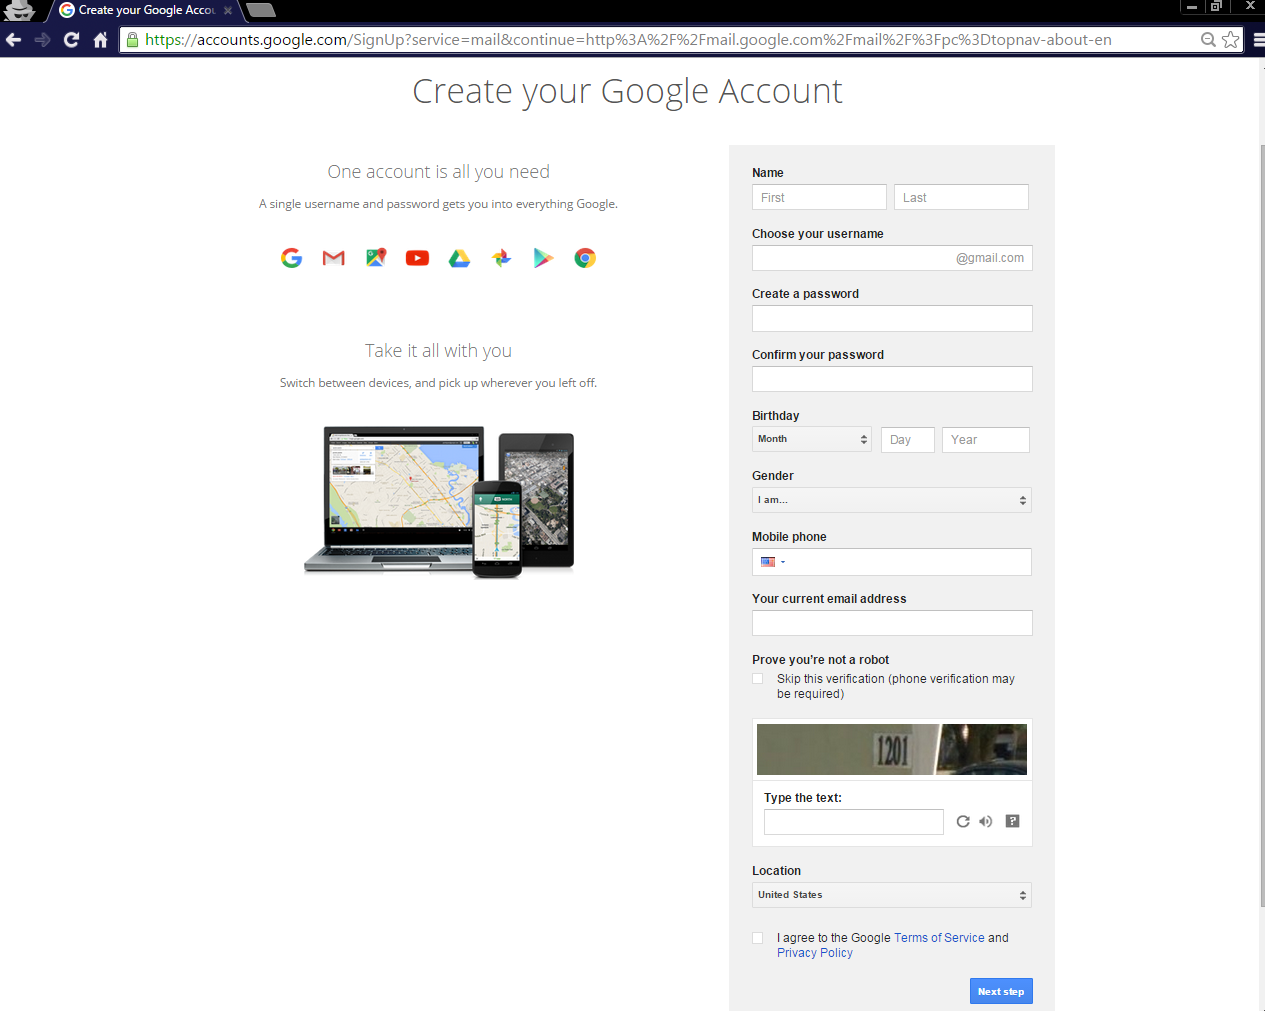 how to create subheaders in inbox in gmail